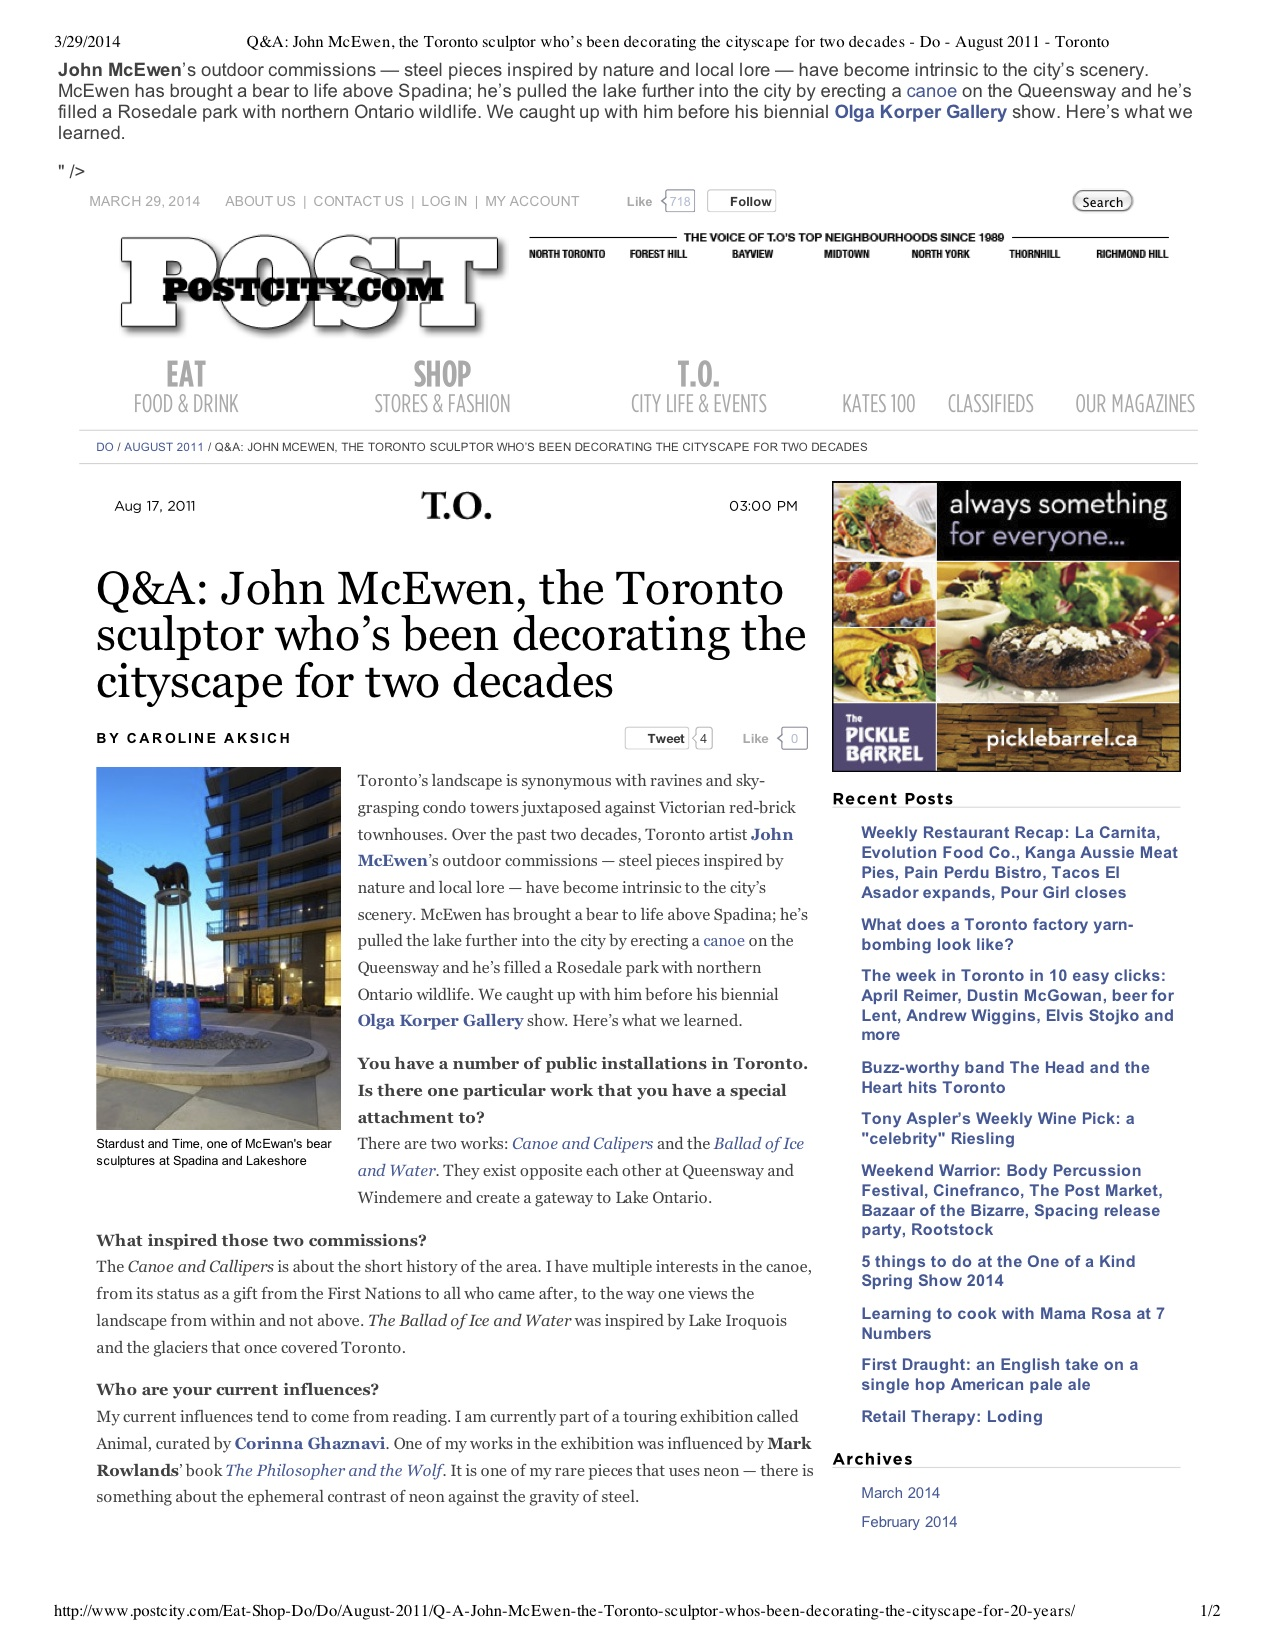 """Preview of """"Q&A- John McEwen, the To...- August 2011 - Toronto"""".jpg"""